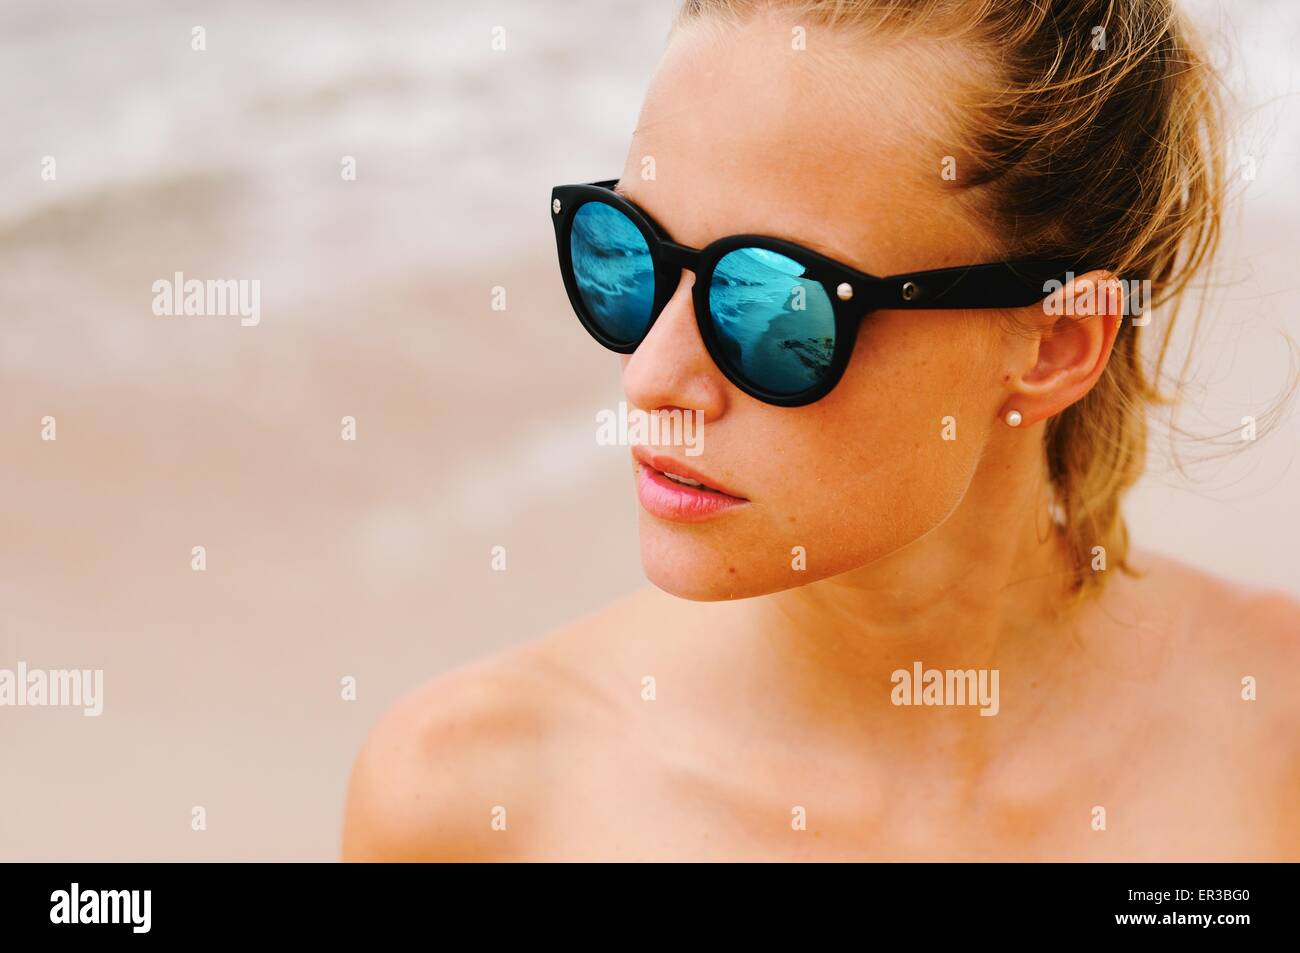 Portrait of a woman at beach wearing sunglasses - Stock Image